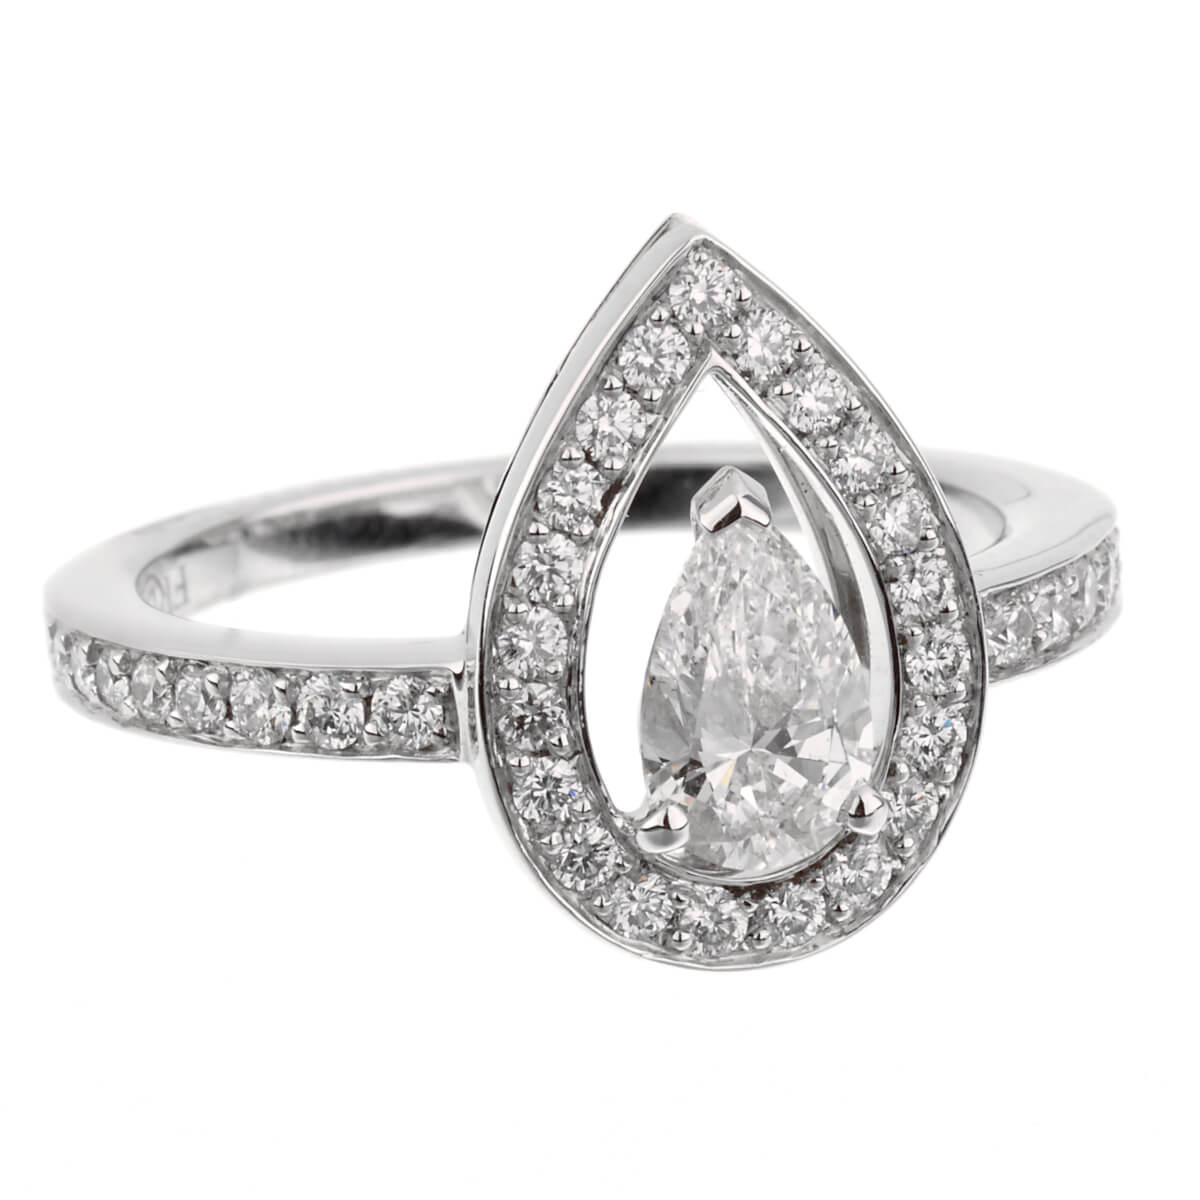 Fred of Paris Lovelight Pear Shaped Diamond Engagement Ring